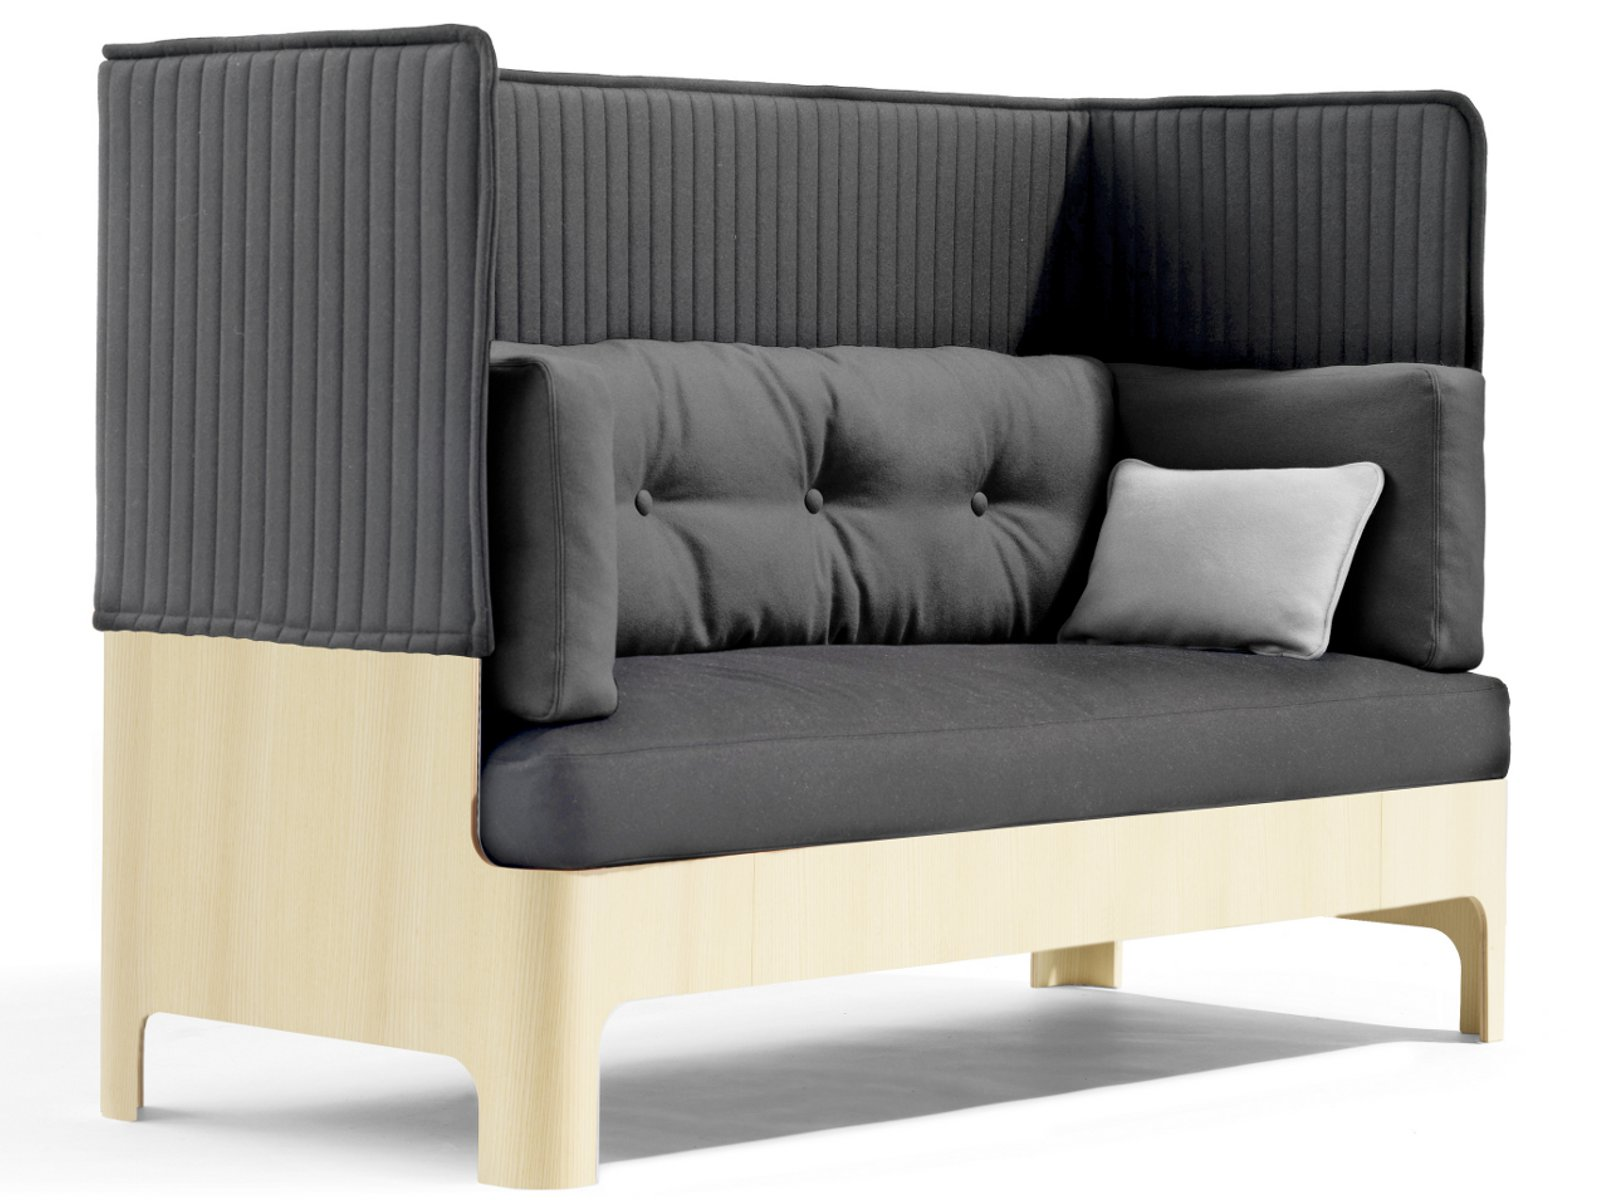 koja canap avec dossier haut by bl station design fredrik mattson. Black Bedroom Furniture Sets. Home Design Ideas